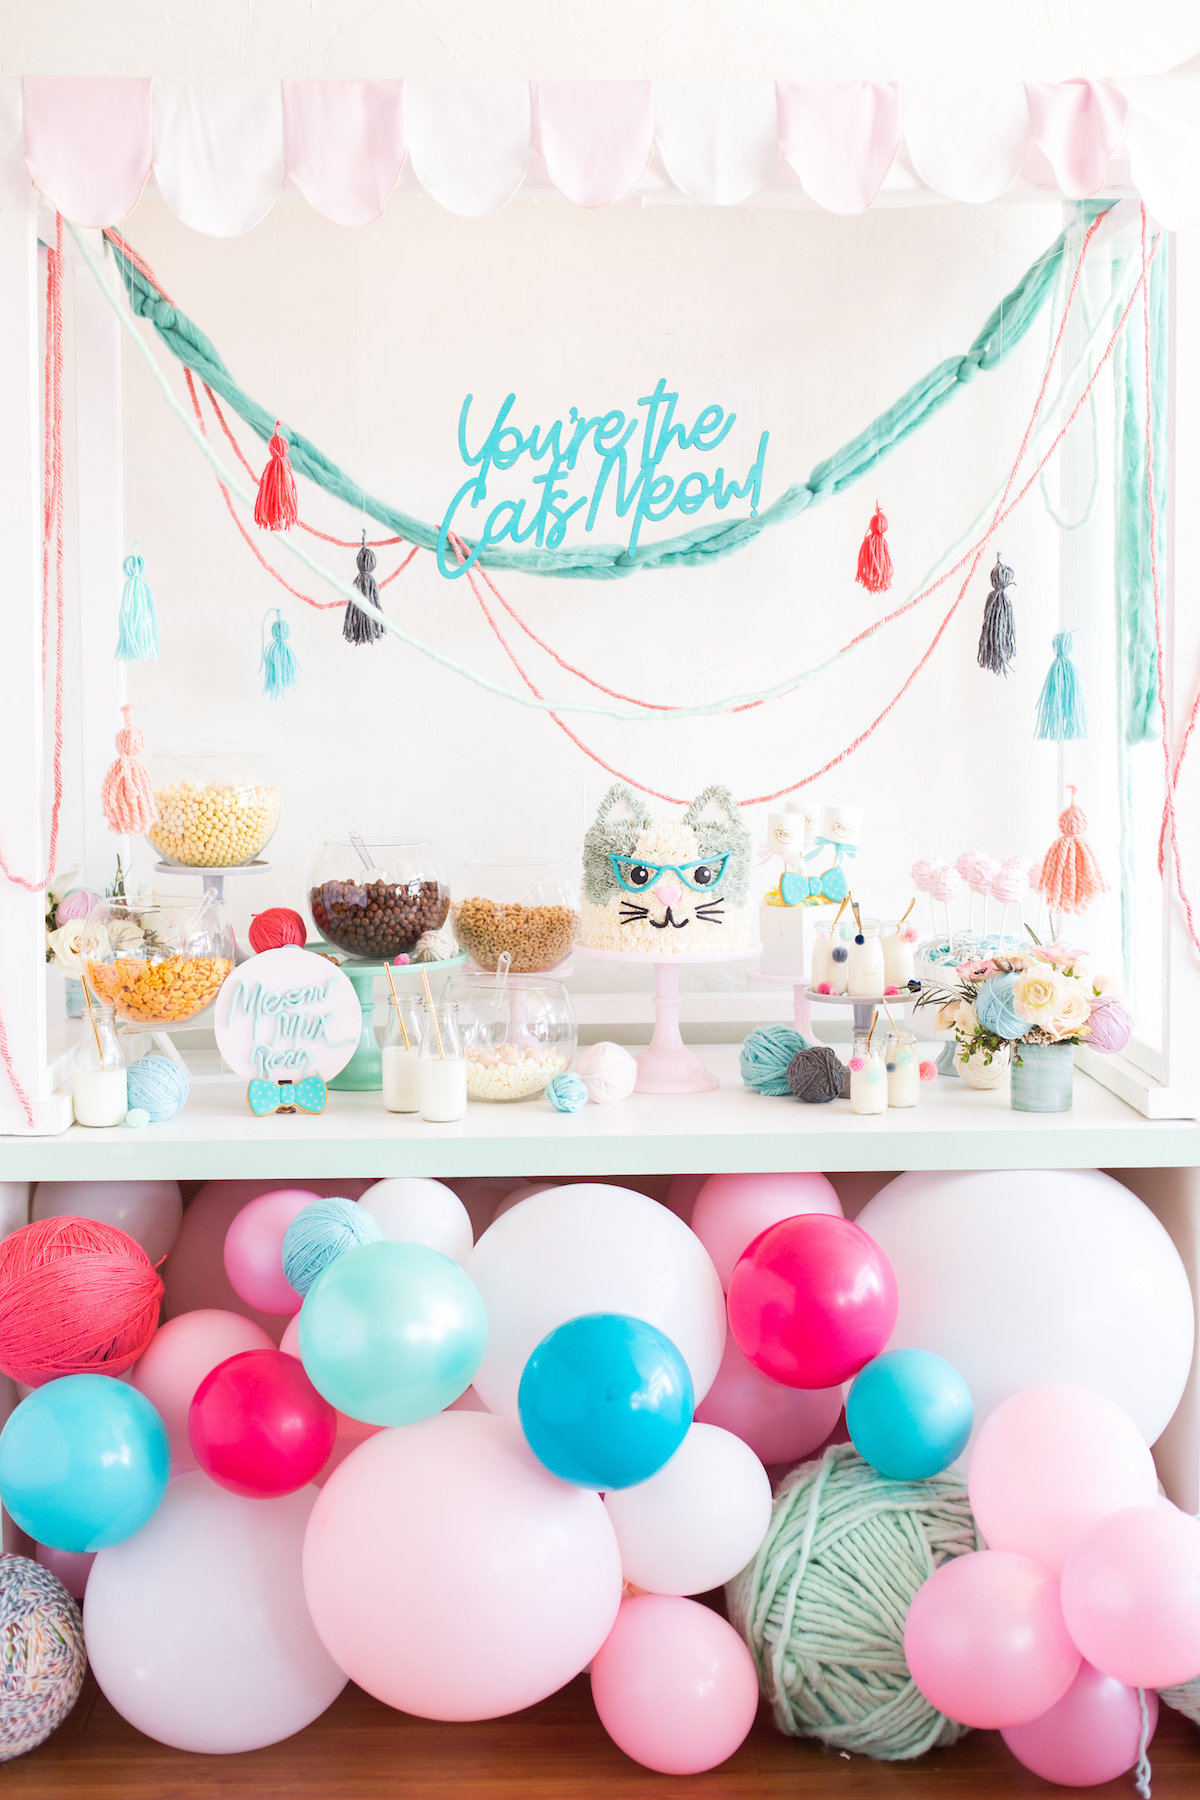 And Of Course No Cat Urday Is Complete Without A Dance Party Under The Balloons Photos By Eileen Lu